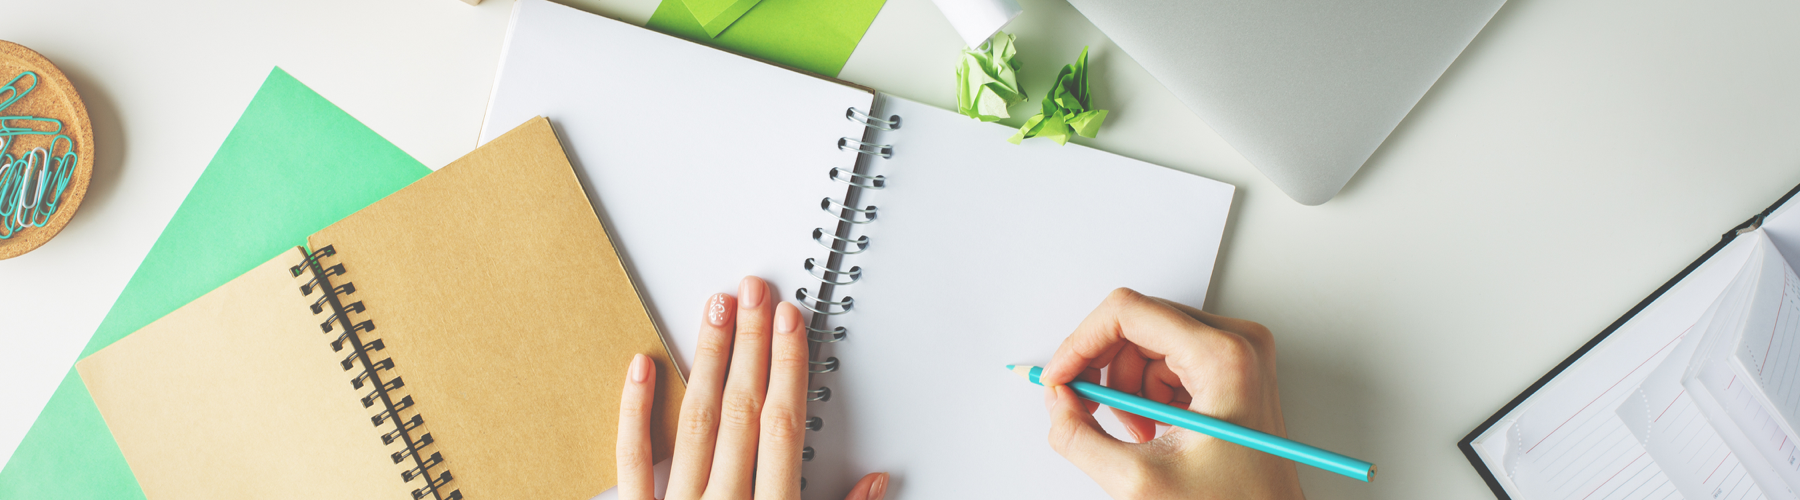 Win Your Clients' Loyalty With Clever Custom Notepads